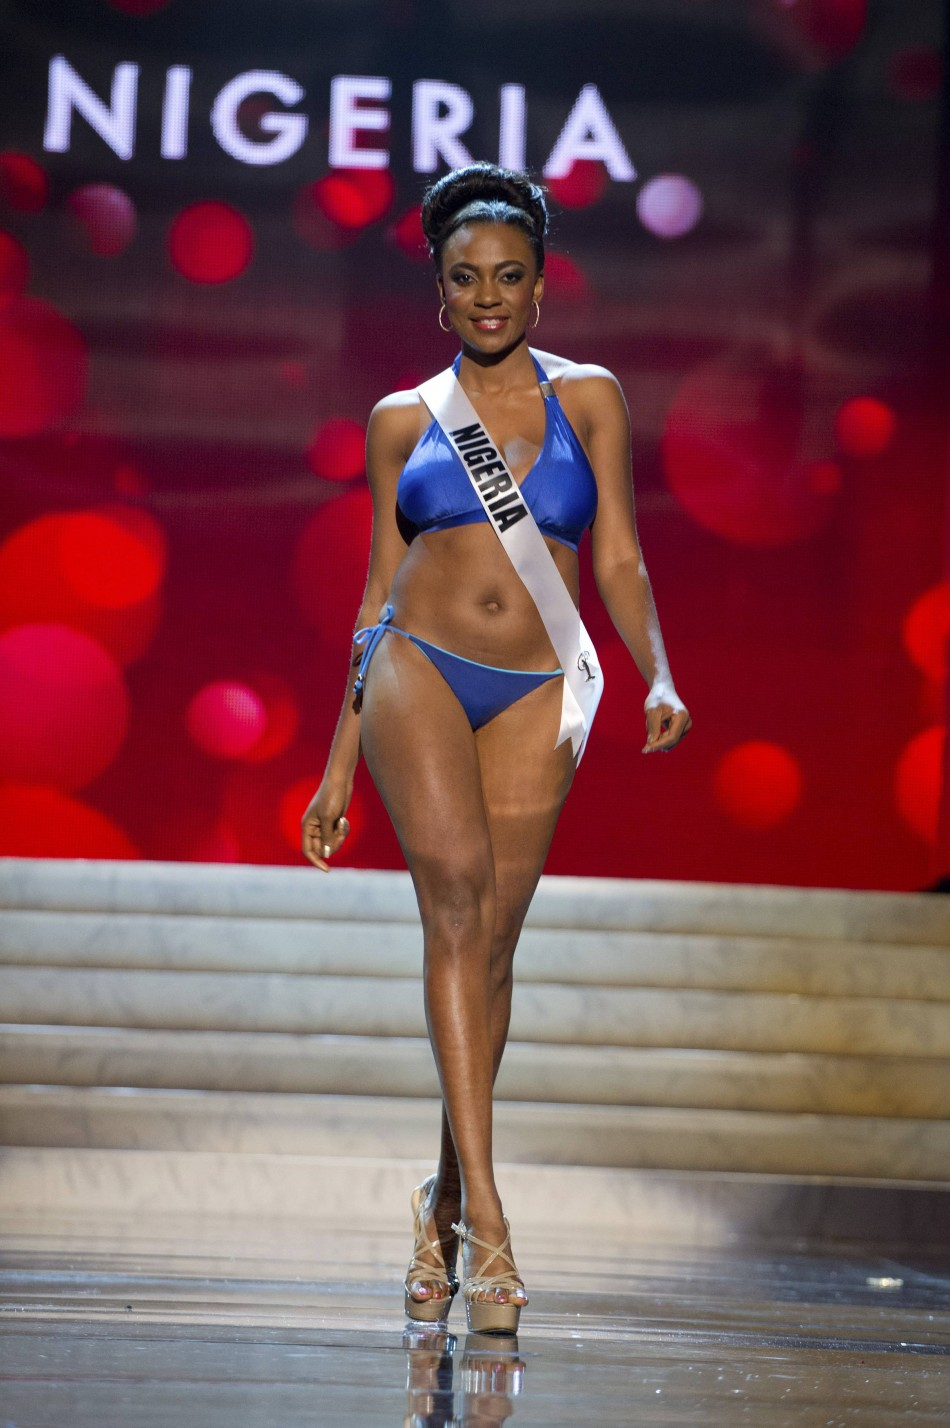 Miss Nigeria Isabella Ayuk at the Swimsuit Competition of the 2012 Miss Universe Presentation Show at PH Live in Las Vegas